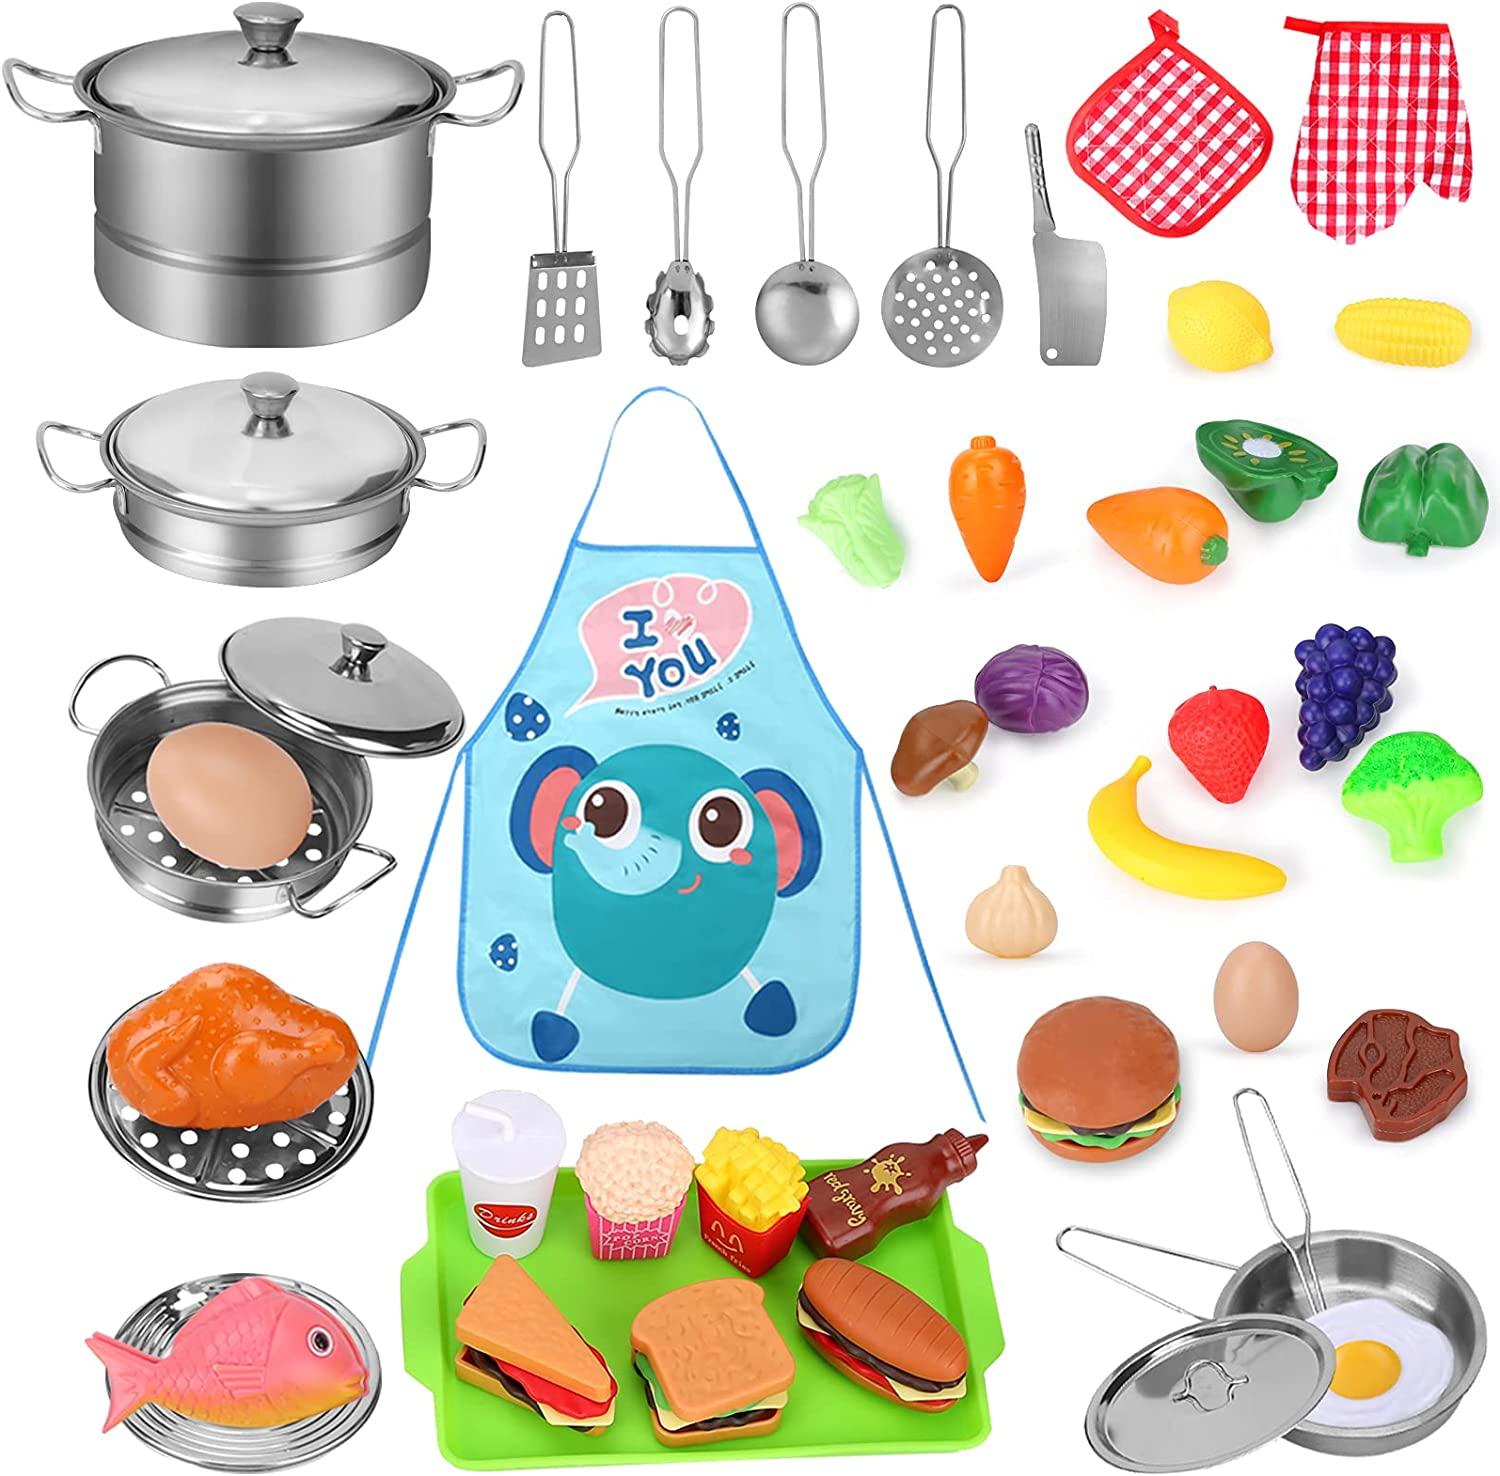 Play Kitchen Accessories 46Pcs, Toy Pots and Pans for Kids Kitchen, Kids Cooking Sets with Cute Play Foods, Kids Apron for 3 4 5 6 7 Year Old Girls Boys